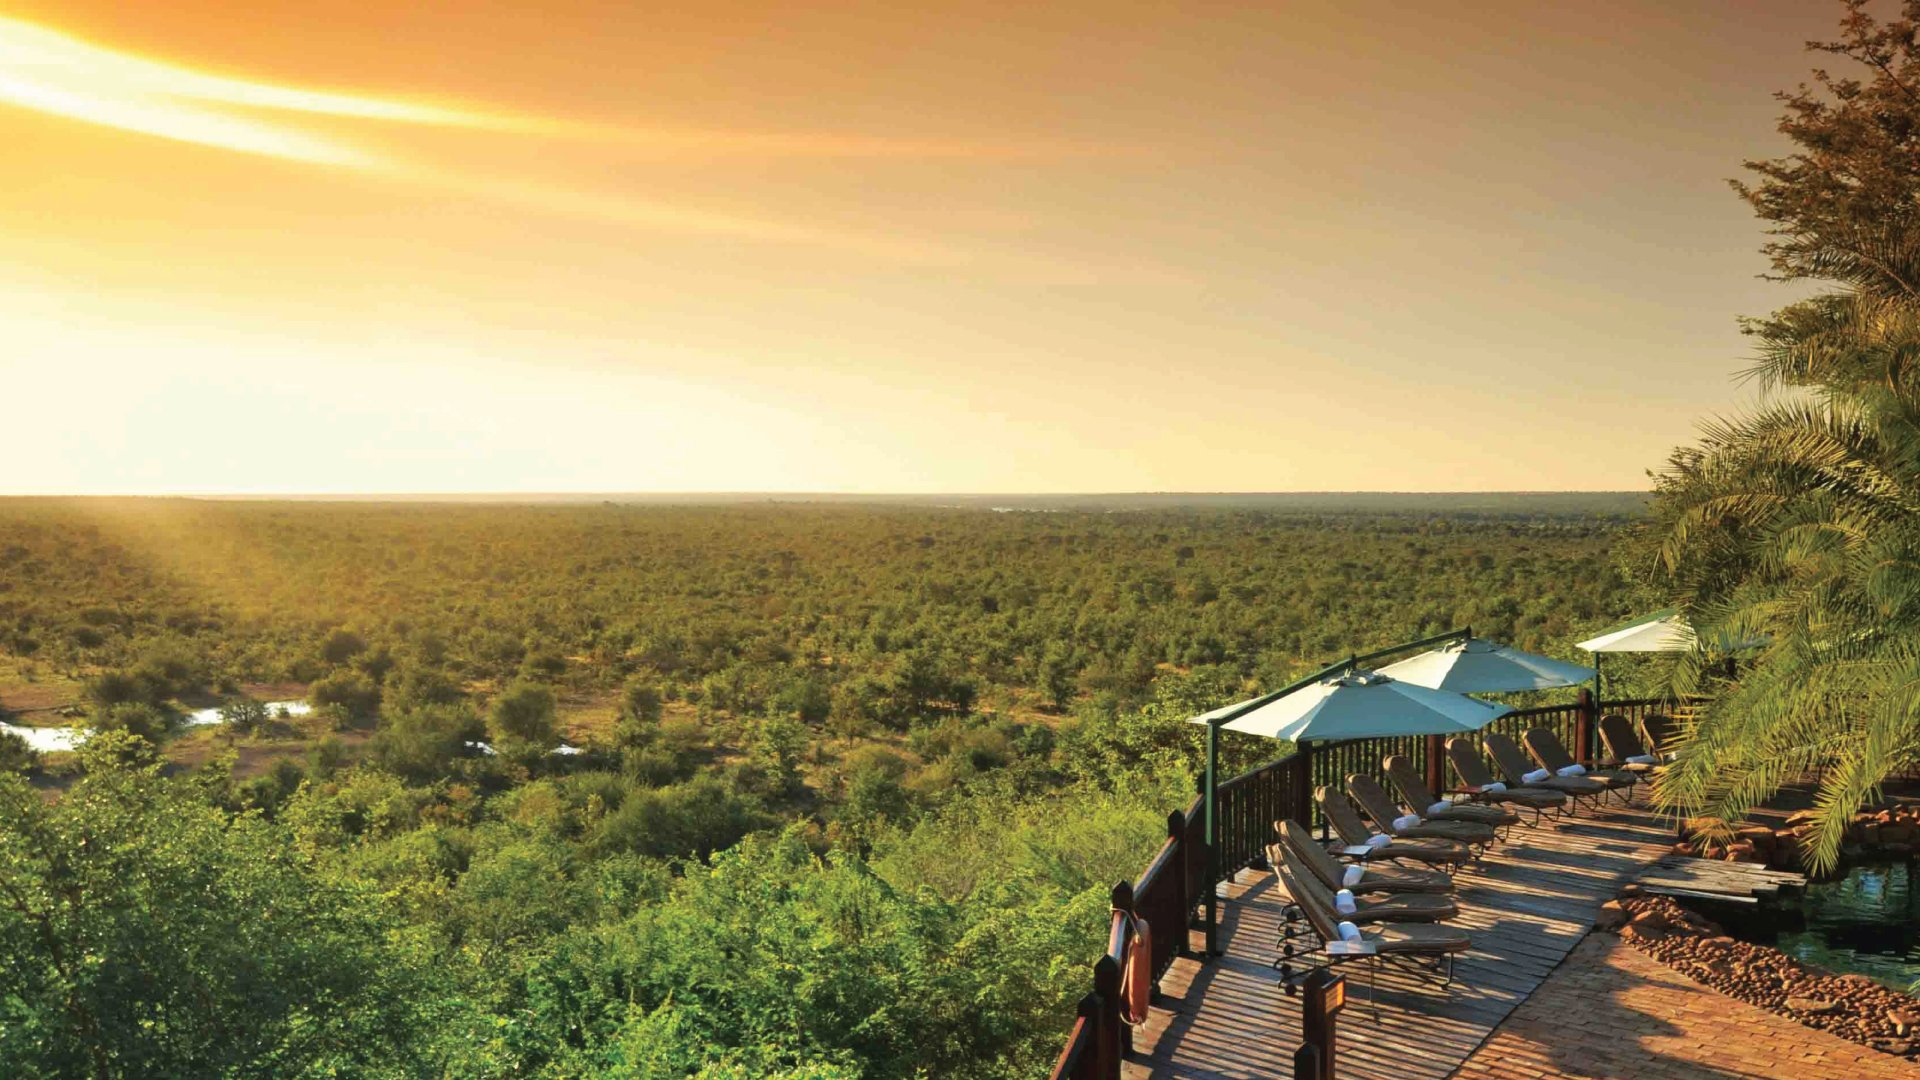 Victoria-Falls-Safari-Lodge-Hotel-pool-sunset